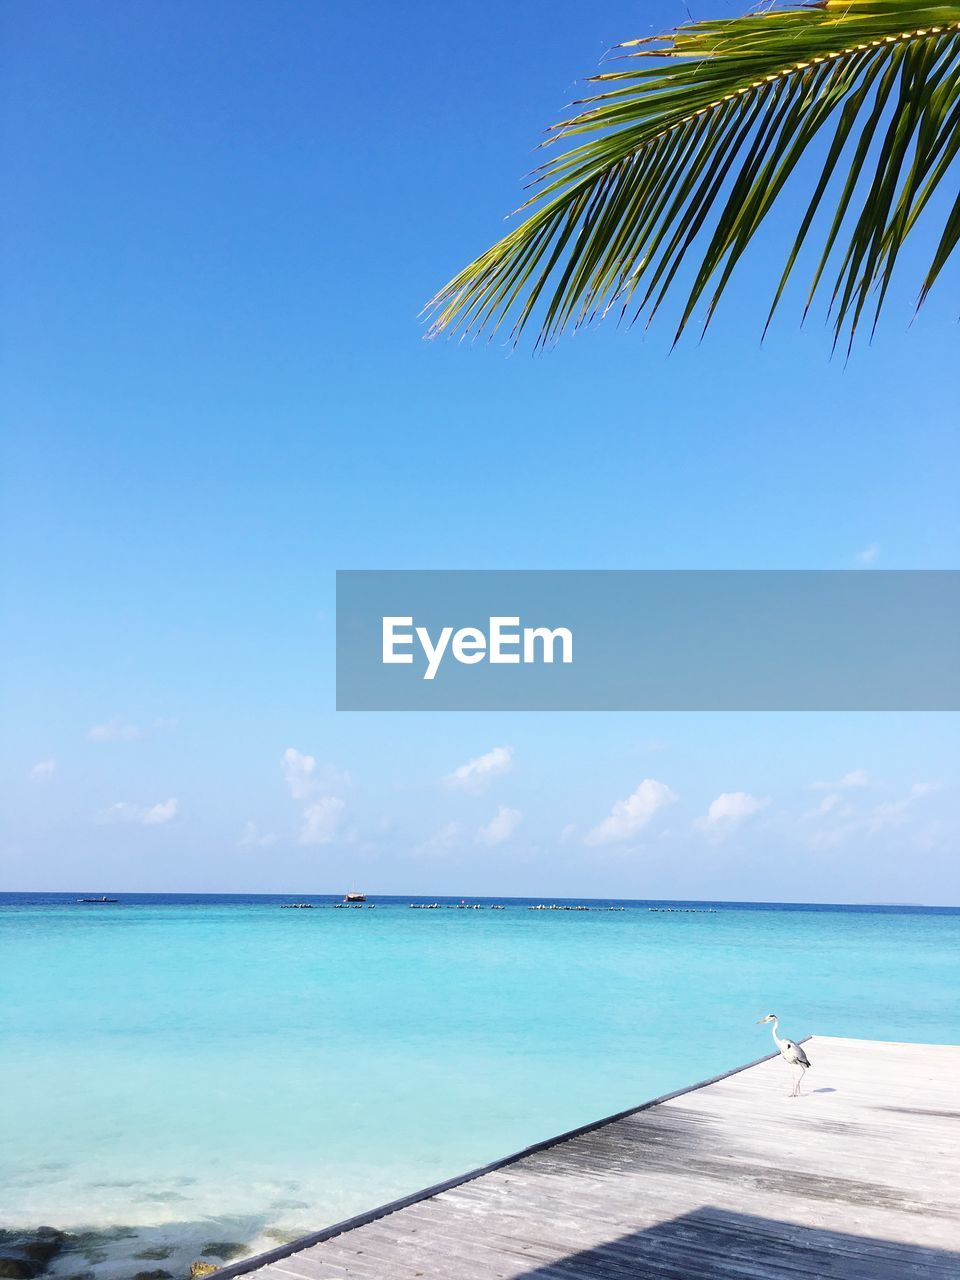 sky, sea, water, horizon over water, beauty in nature, scenics - nature, horizon, beach, blue, tranquility, nature, tranquil scene, day, palm tree, tropical climate, idyllic, tree, land, no people, outdoors, palm leaf, turquoise colored, swimming pool